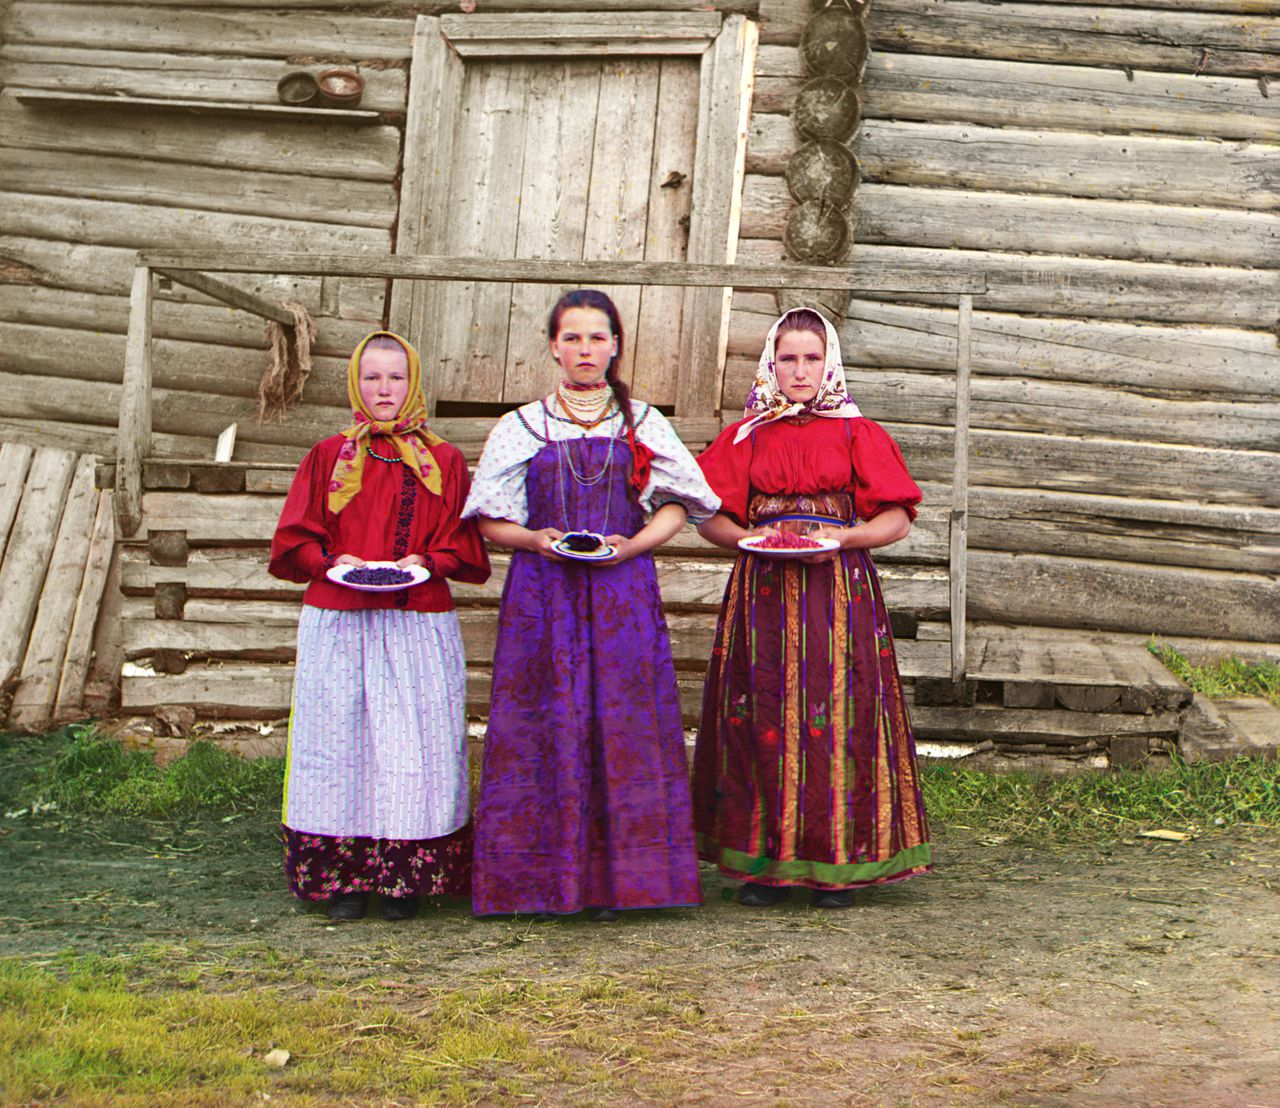 Russian peasant girls offer berries to visitors to their izba, a traditional wooden house, in a rural area along the Sheksna River near the small town of Kirillov, Russia, 1909. (Photo by Sergey Prokudin-Gorsky/Galerie Bilderwelt/Getty Images)